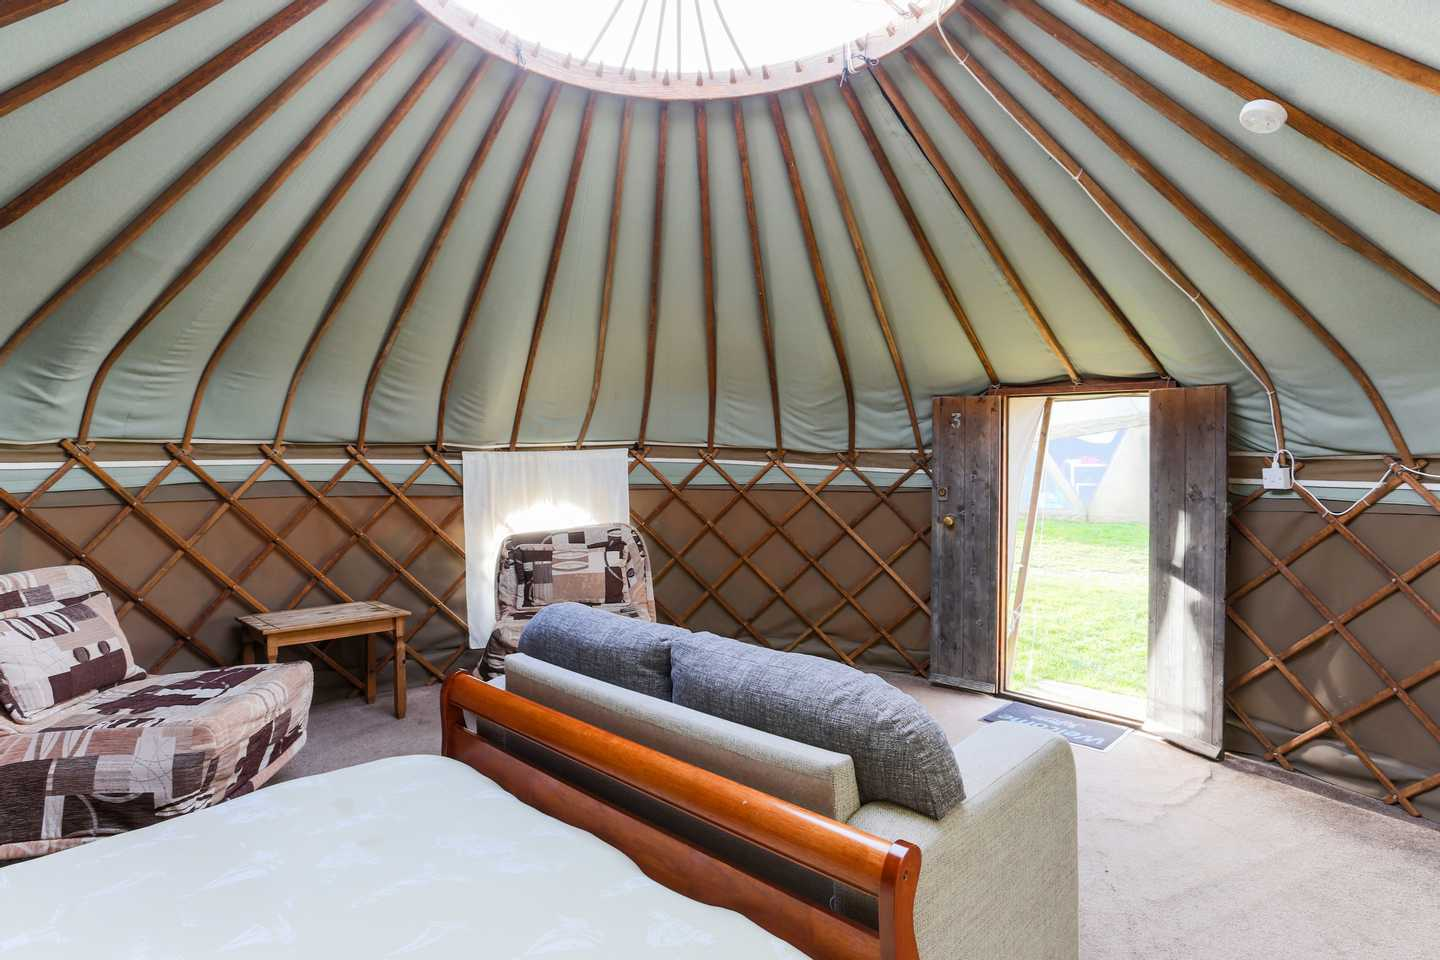 The armchairs and sofa in a Yurt